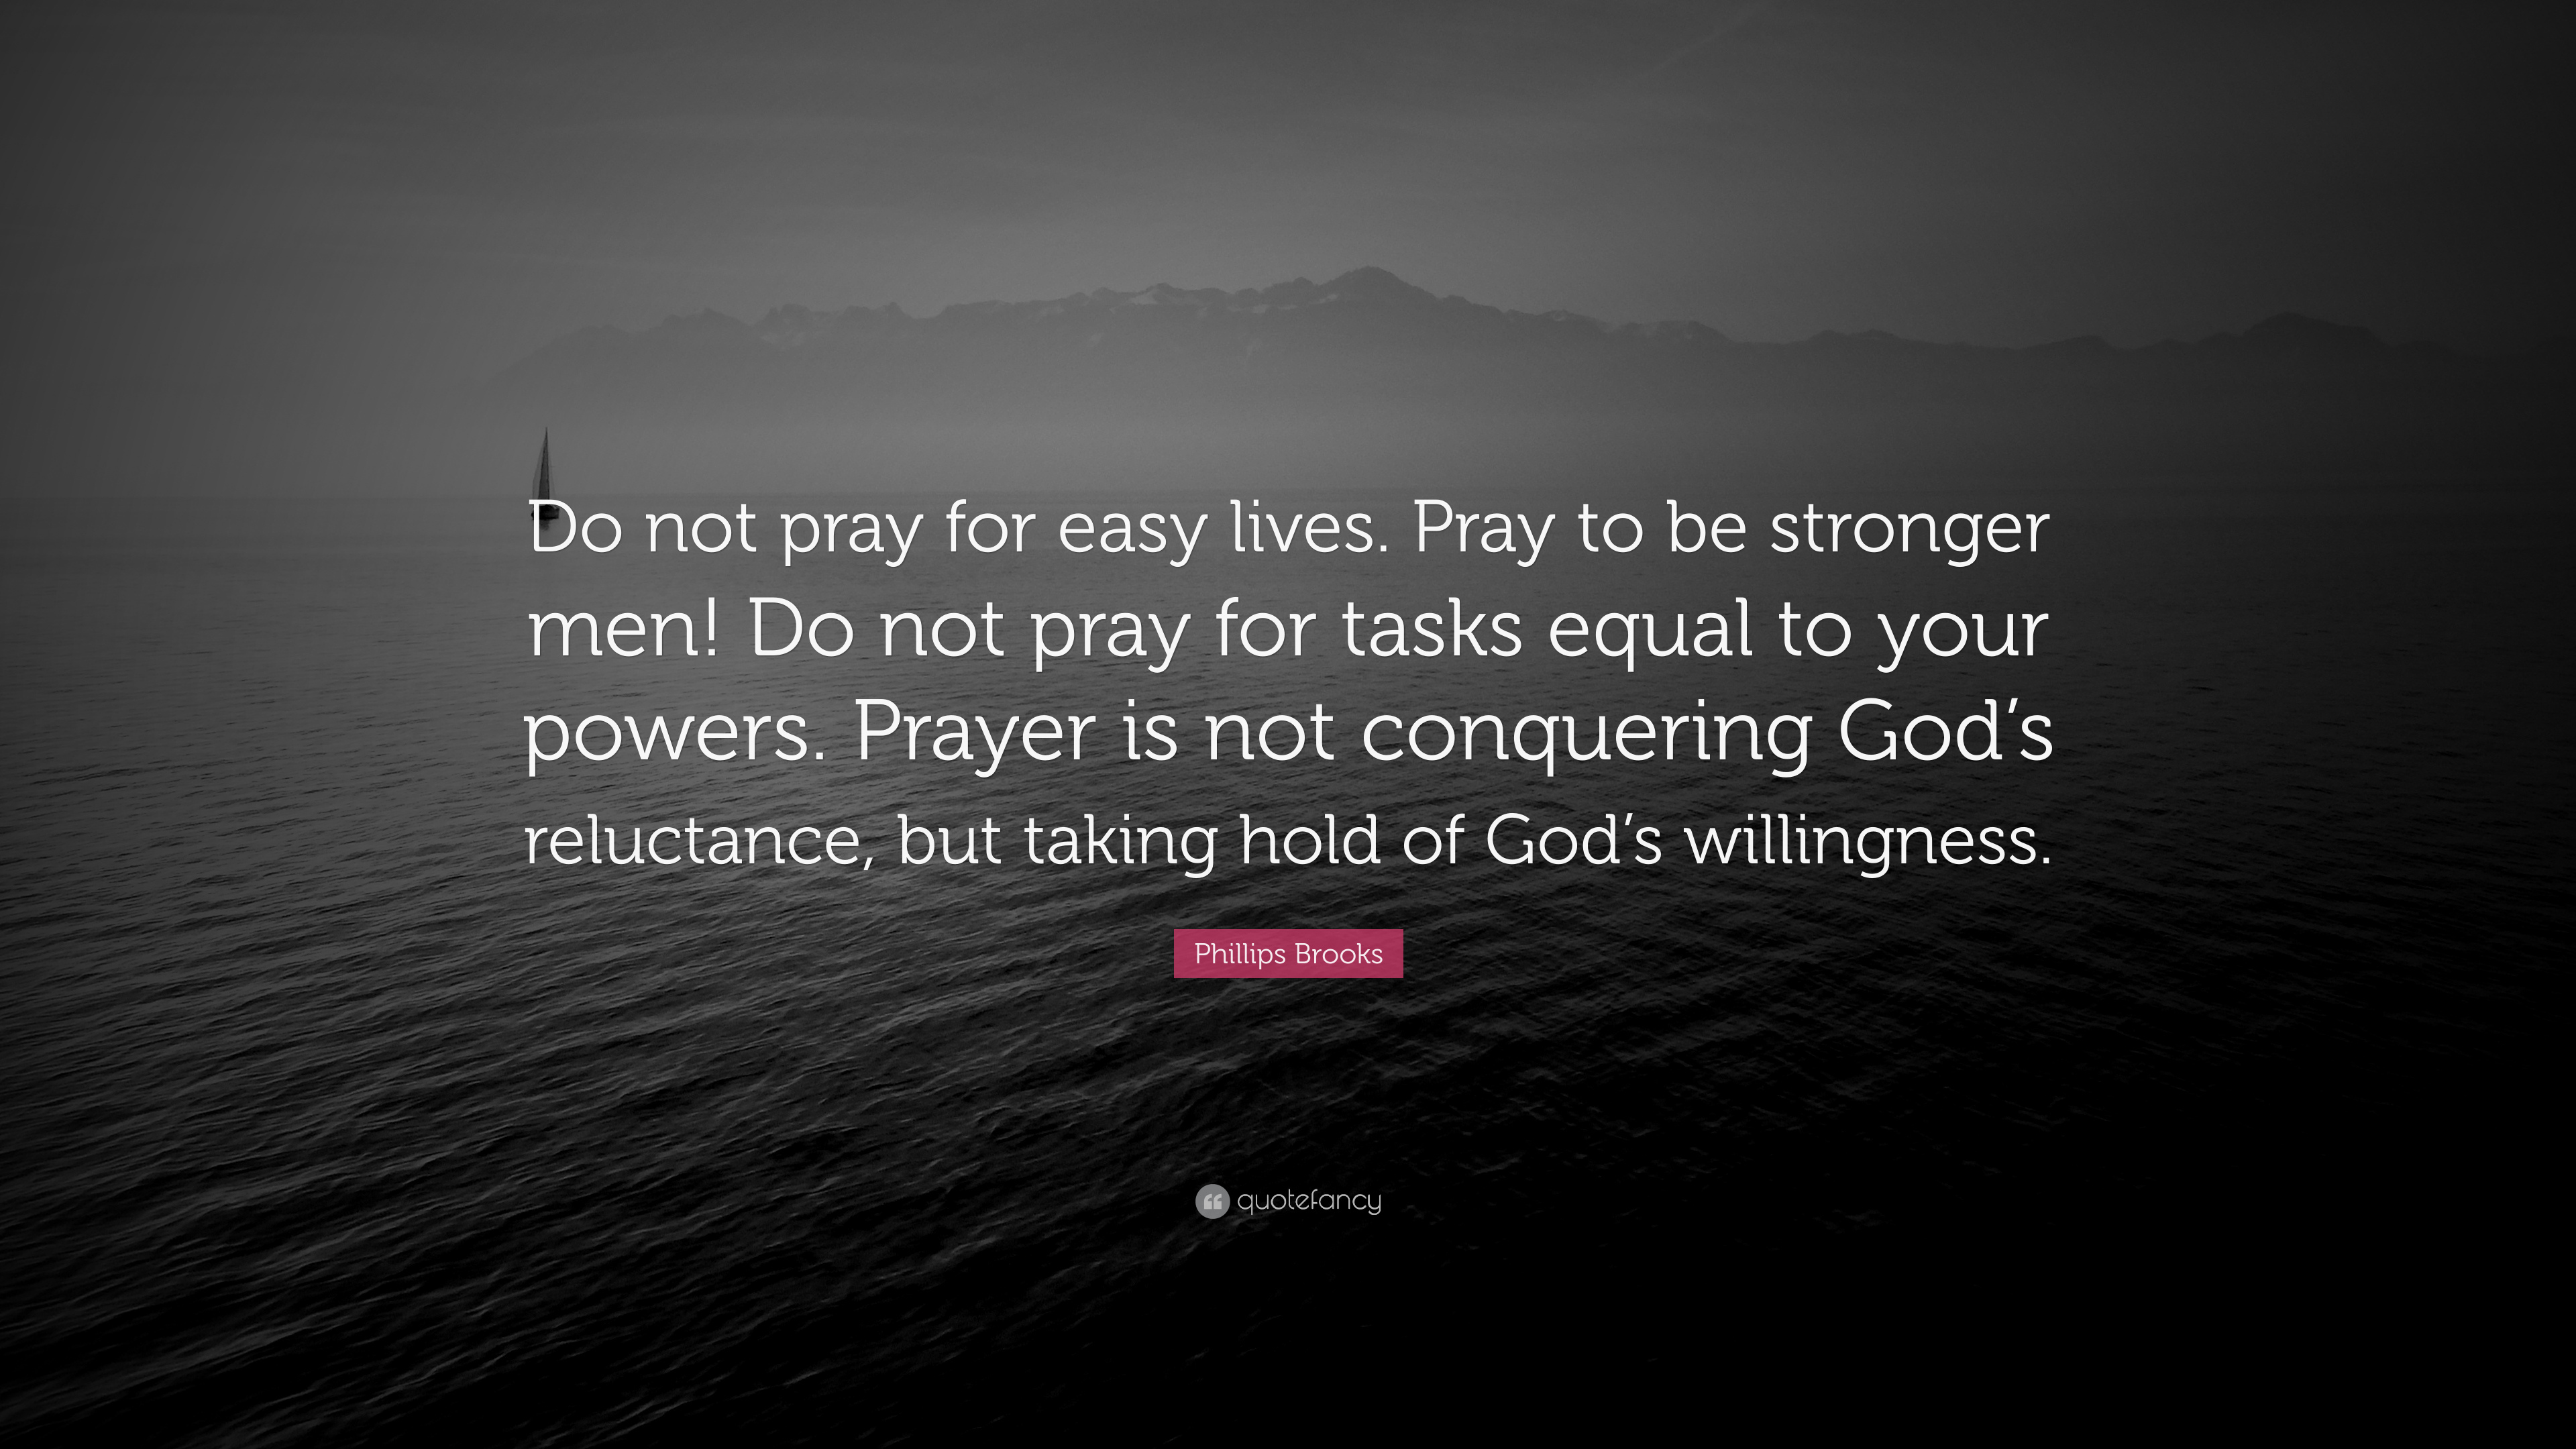 Phillips Brooks Quote Do Not Pray For Easy Lives Pray To Be